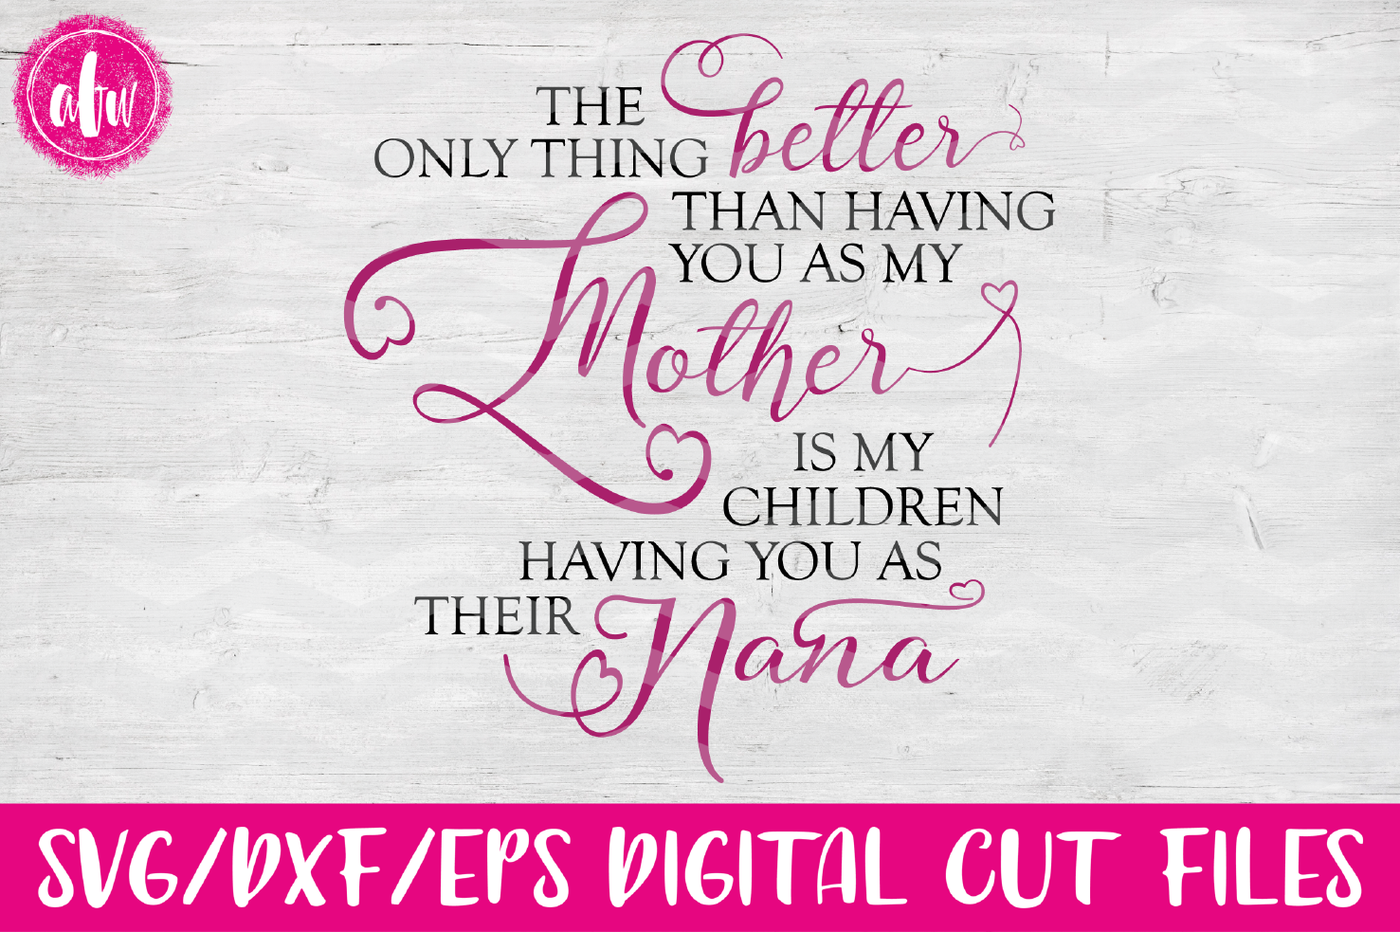 Only Thing Better Nana Svg Dxf Eps Cut File By Afw Designs